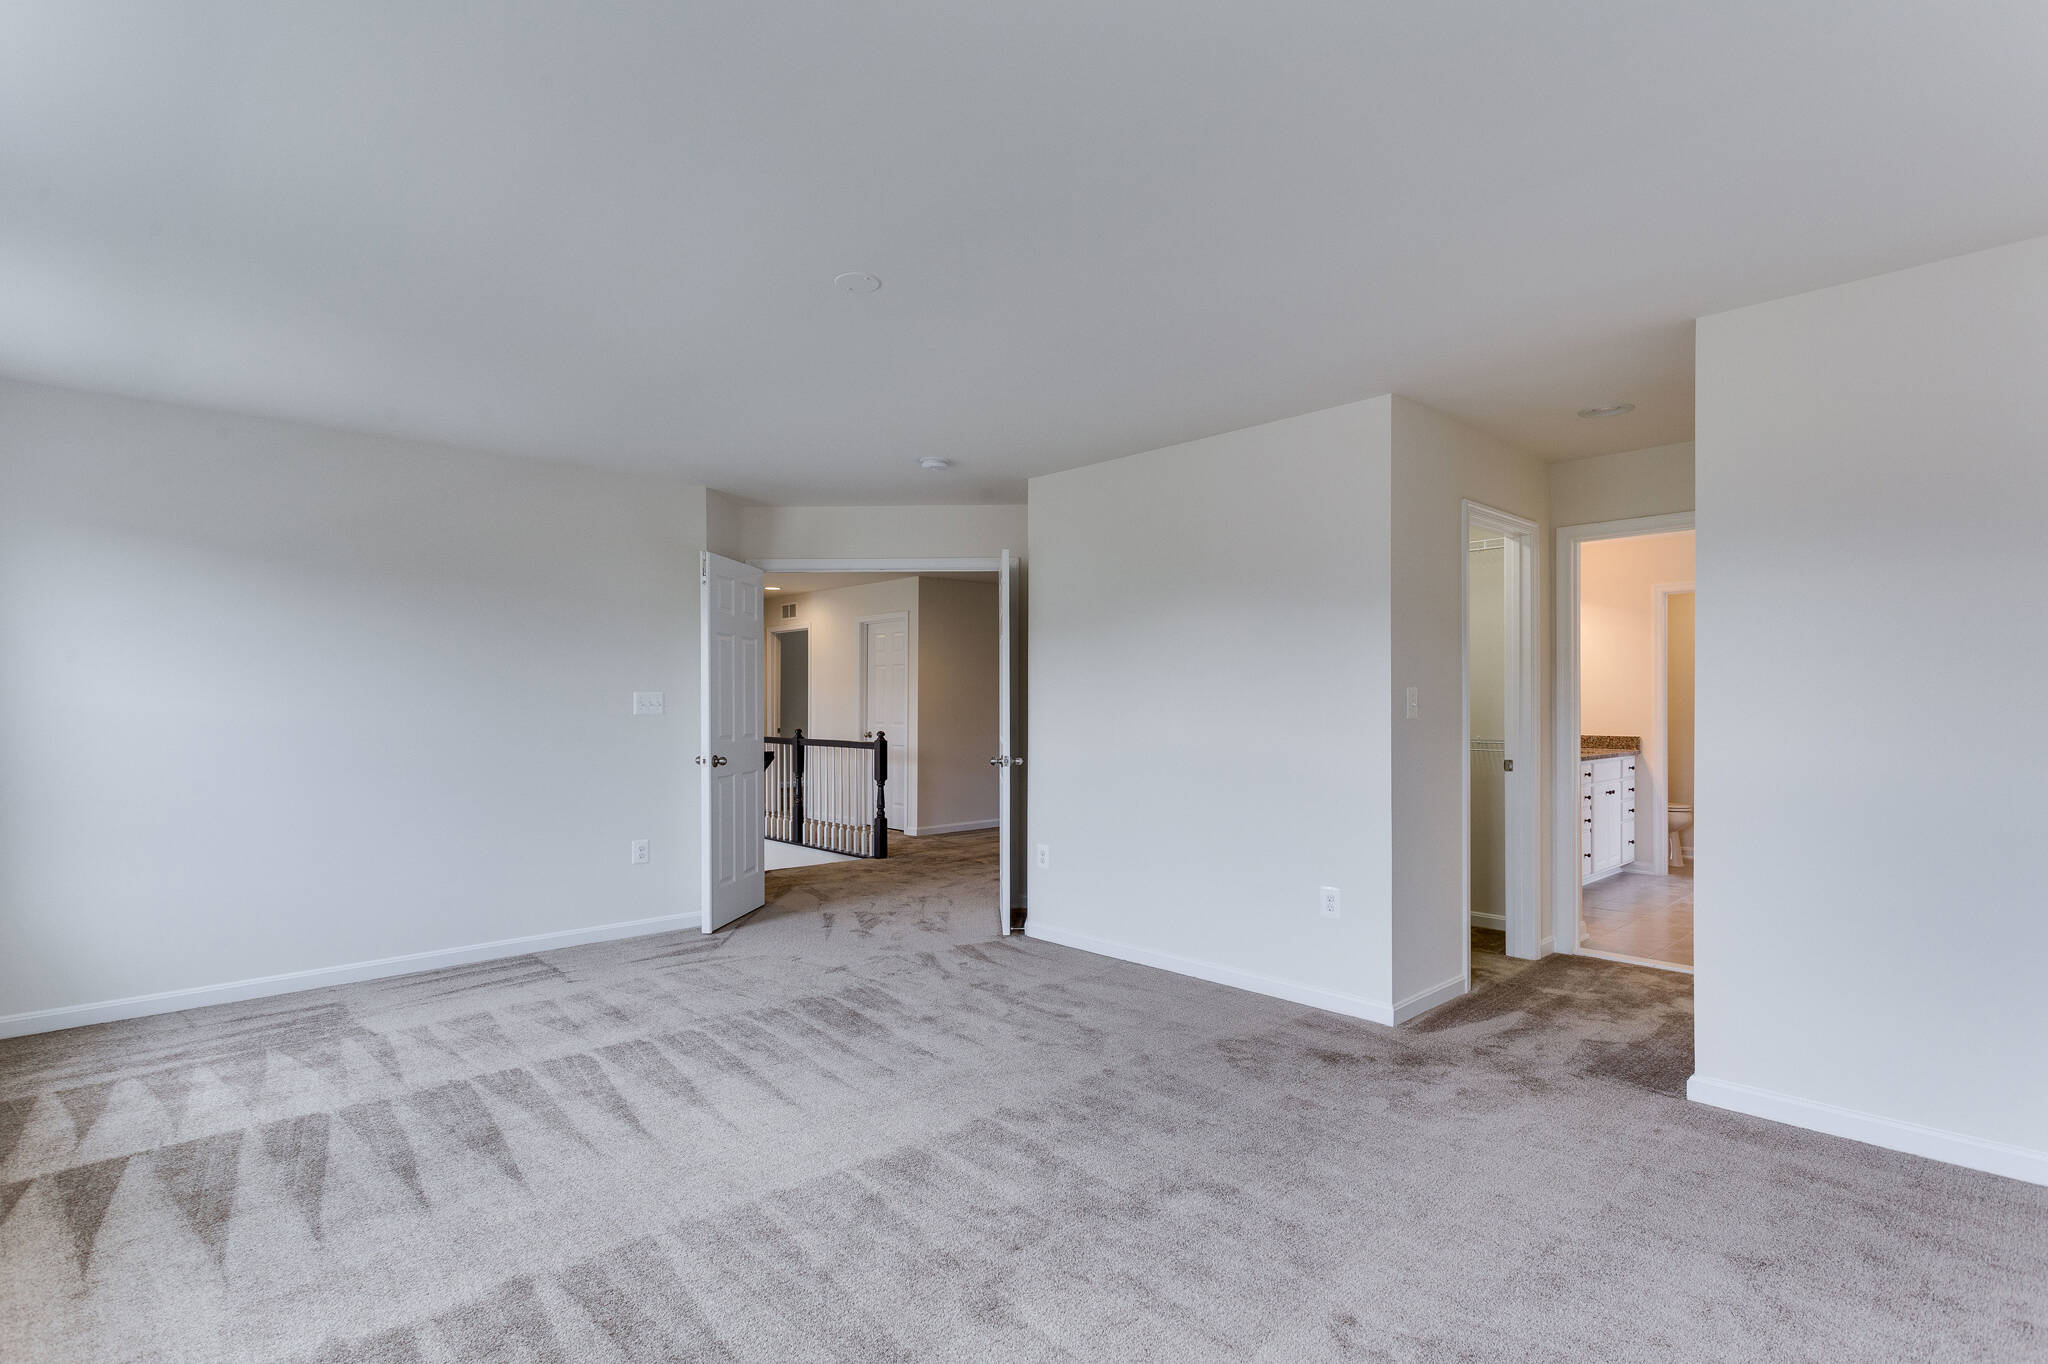 owners suite2 peachtree II 16 lot 10 new homes at wellspring